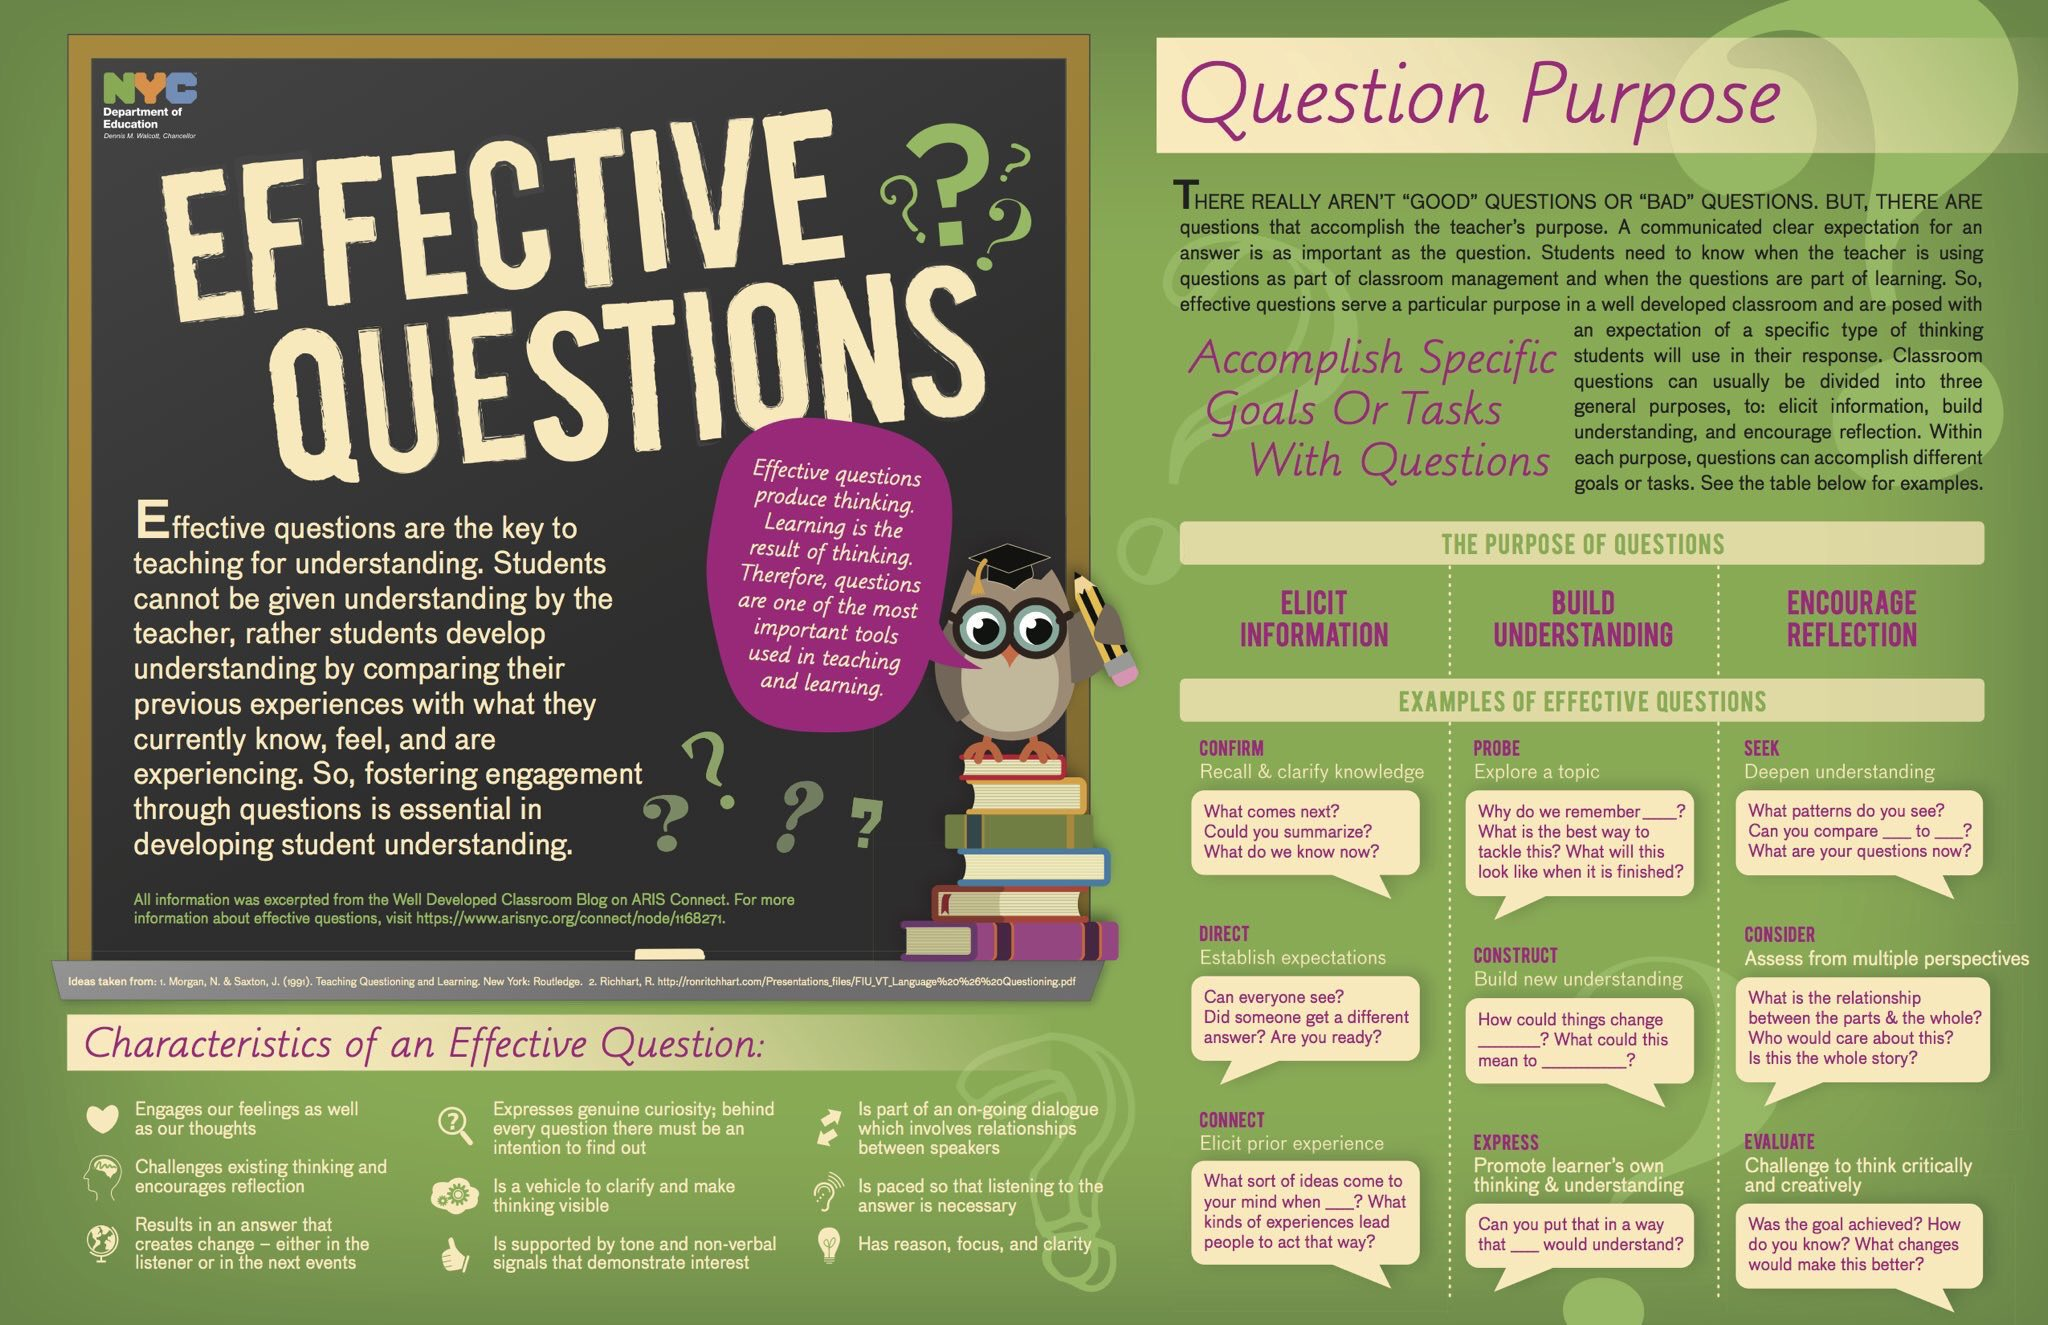 Effective Questions Guide 🤔💡 (by @RhondaBondie1) #edchat #education #elearning #edtech #engchat #pblchat https://t.co/KAHsL2VPzI